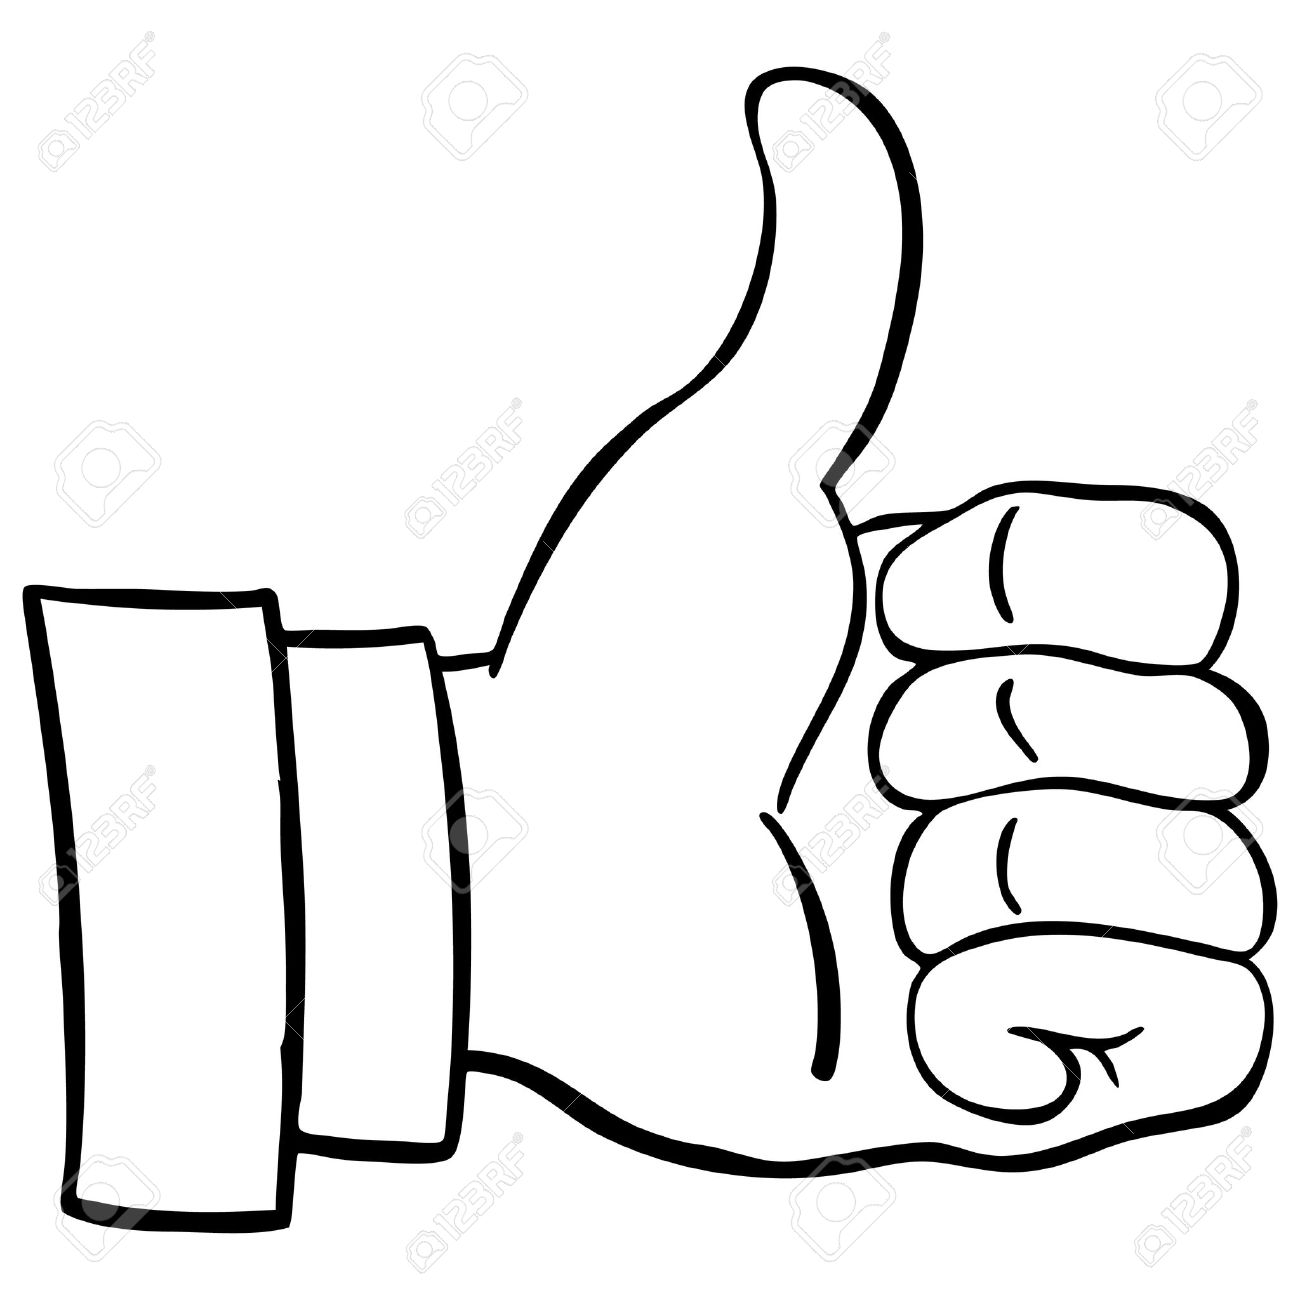 Thumbs Up Clipart Black And White Free Download Best Thumbs Up